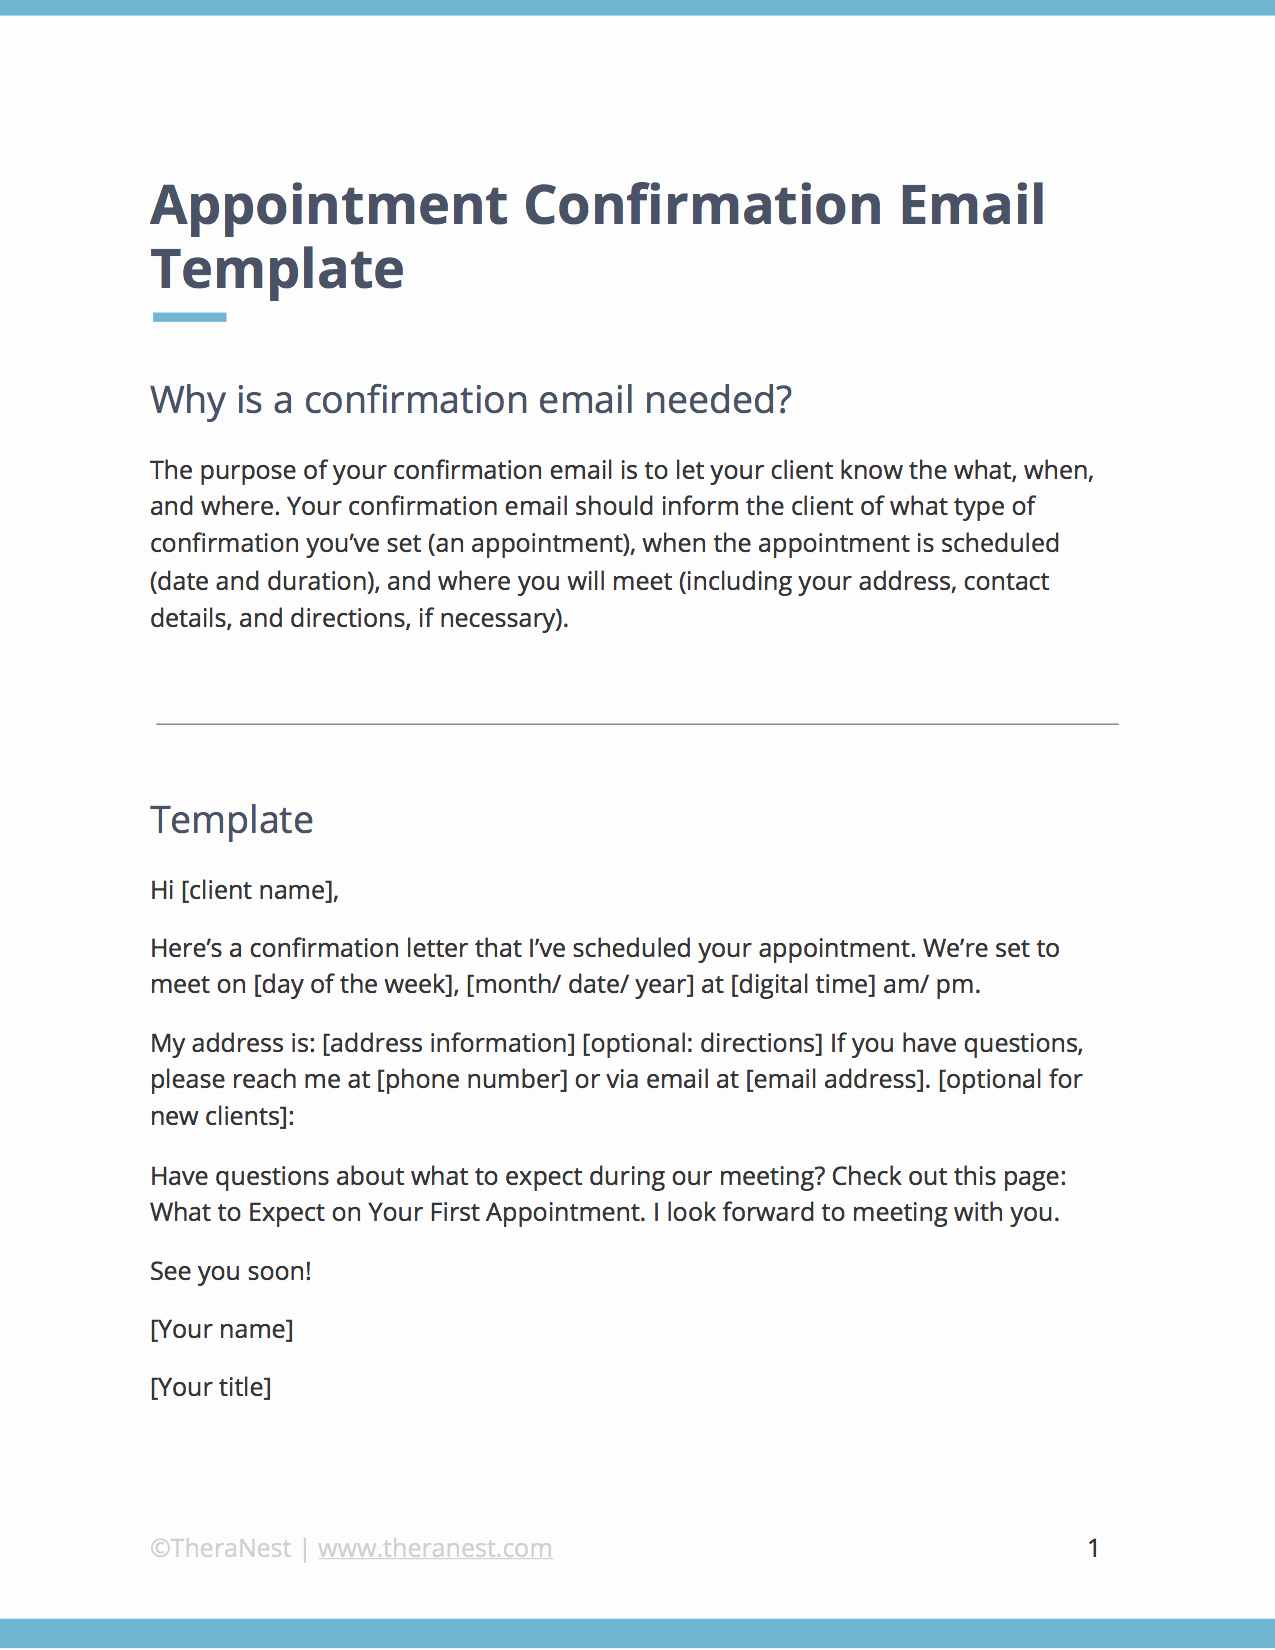 Appointment Confirmation Email Template Luxury Appointment Confirmation Email Template for therapists